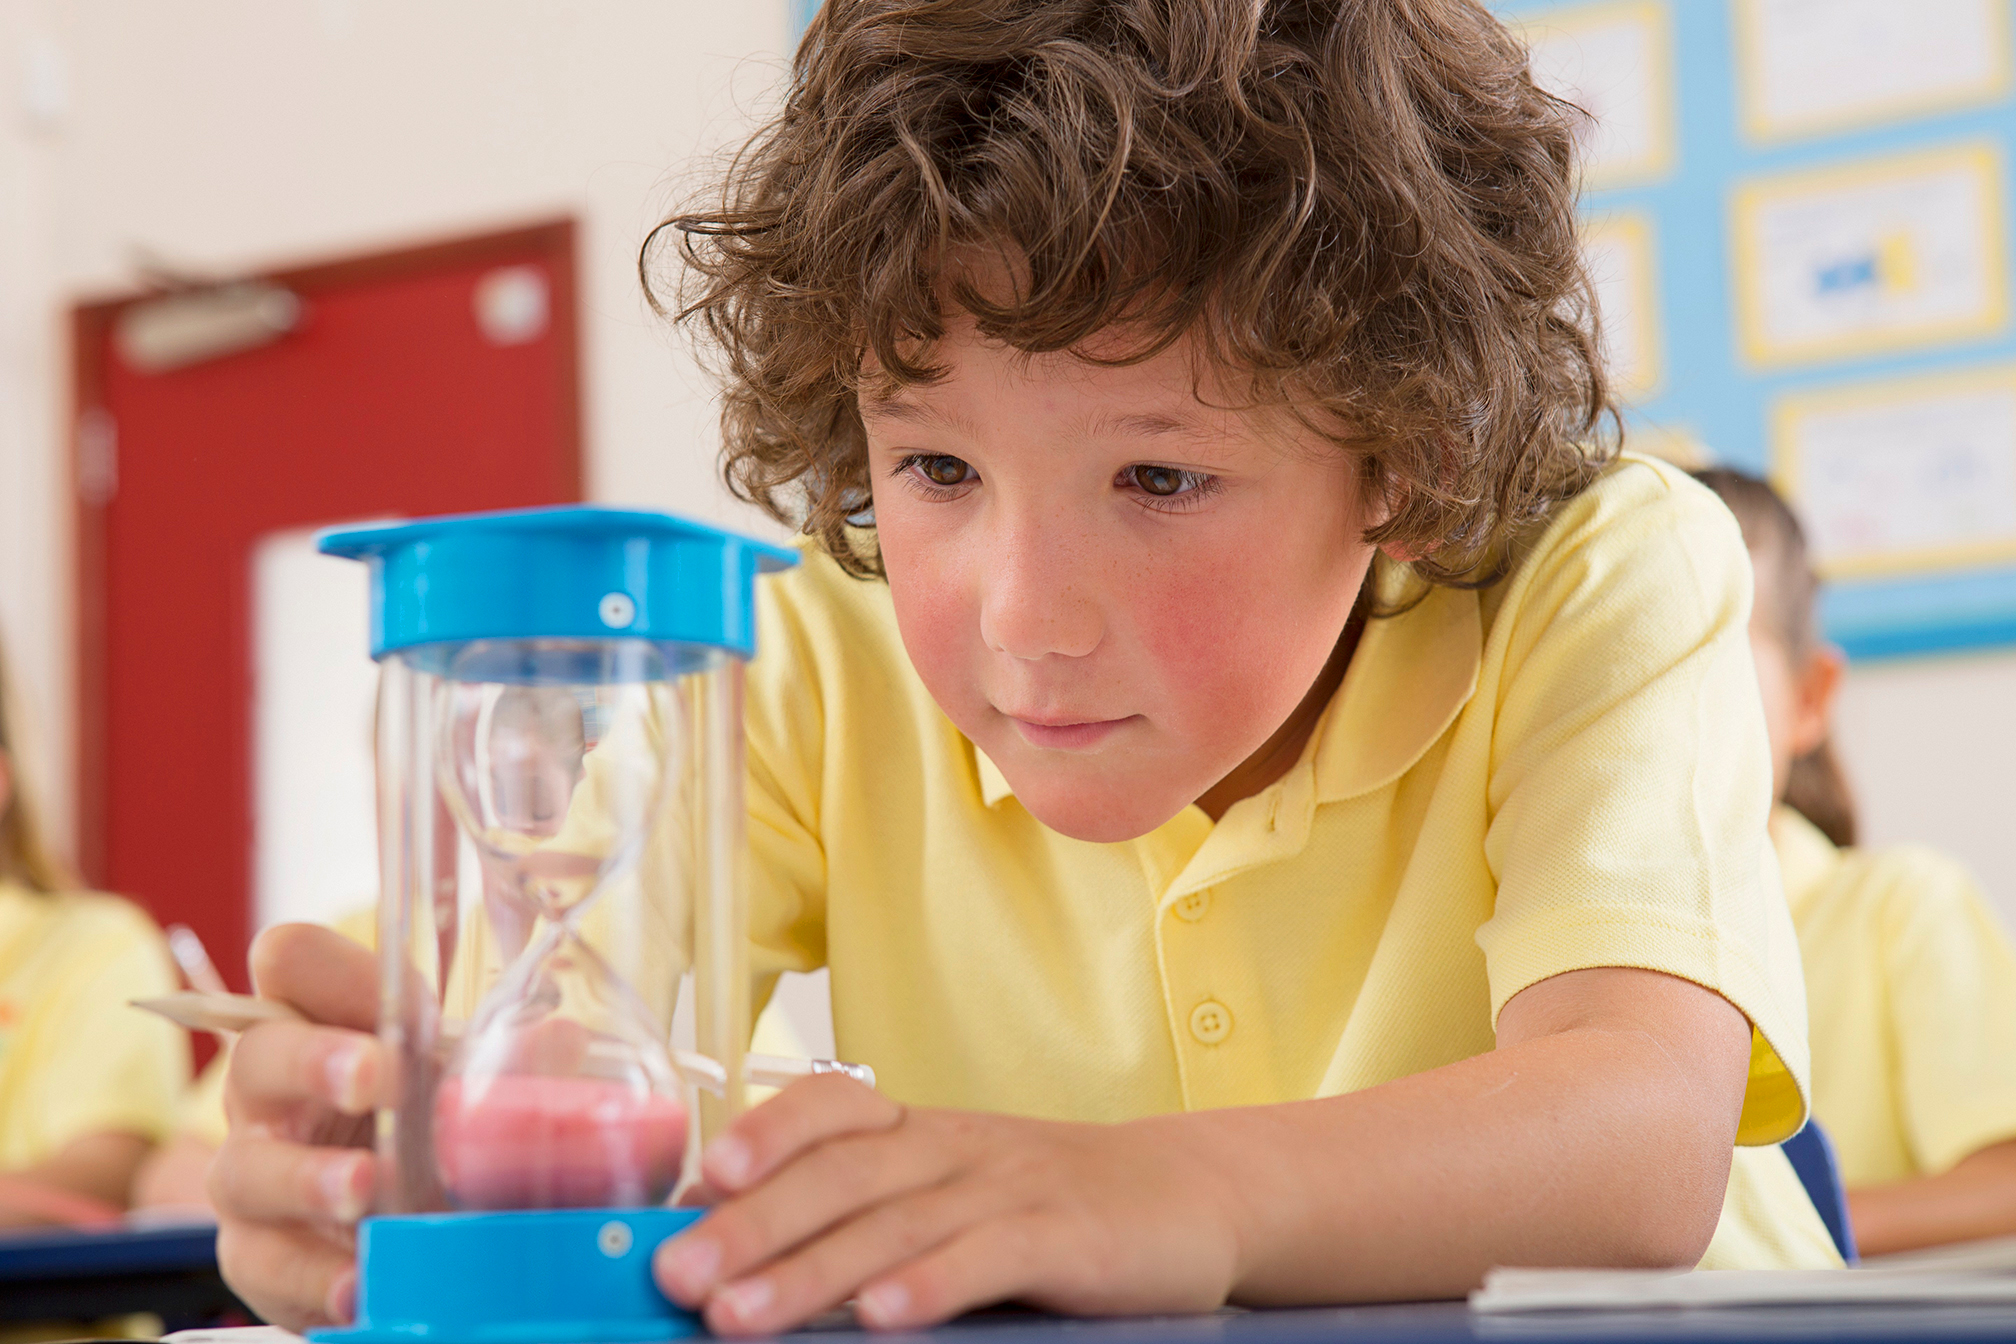 School boy looking at sand timer